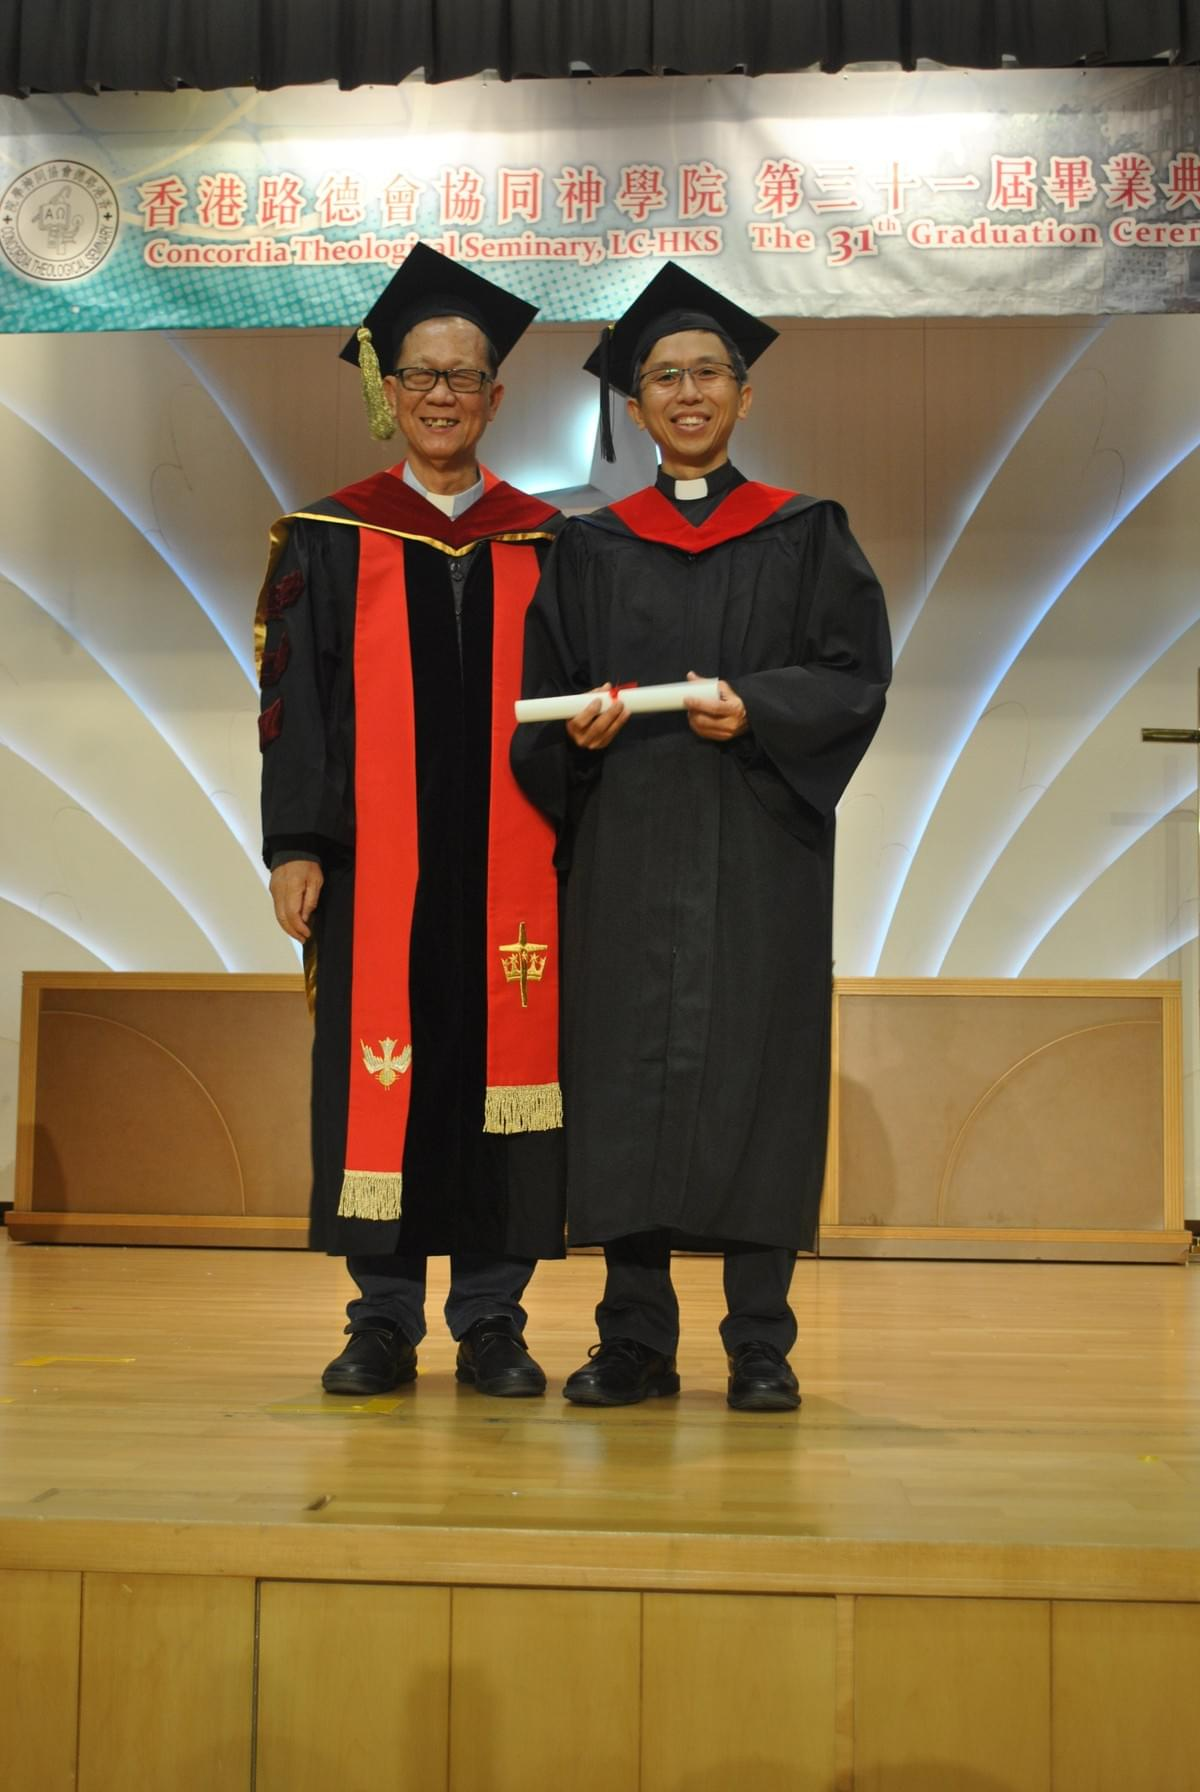 Dr. IP and Rev. KWAN Ying Leong [M. Div.]